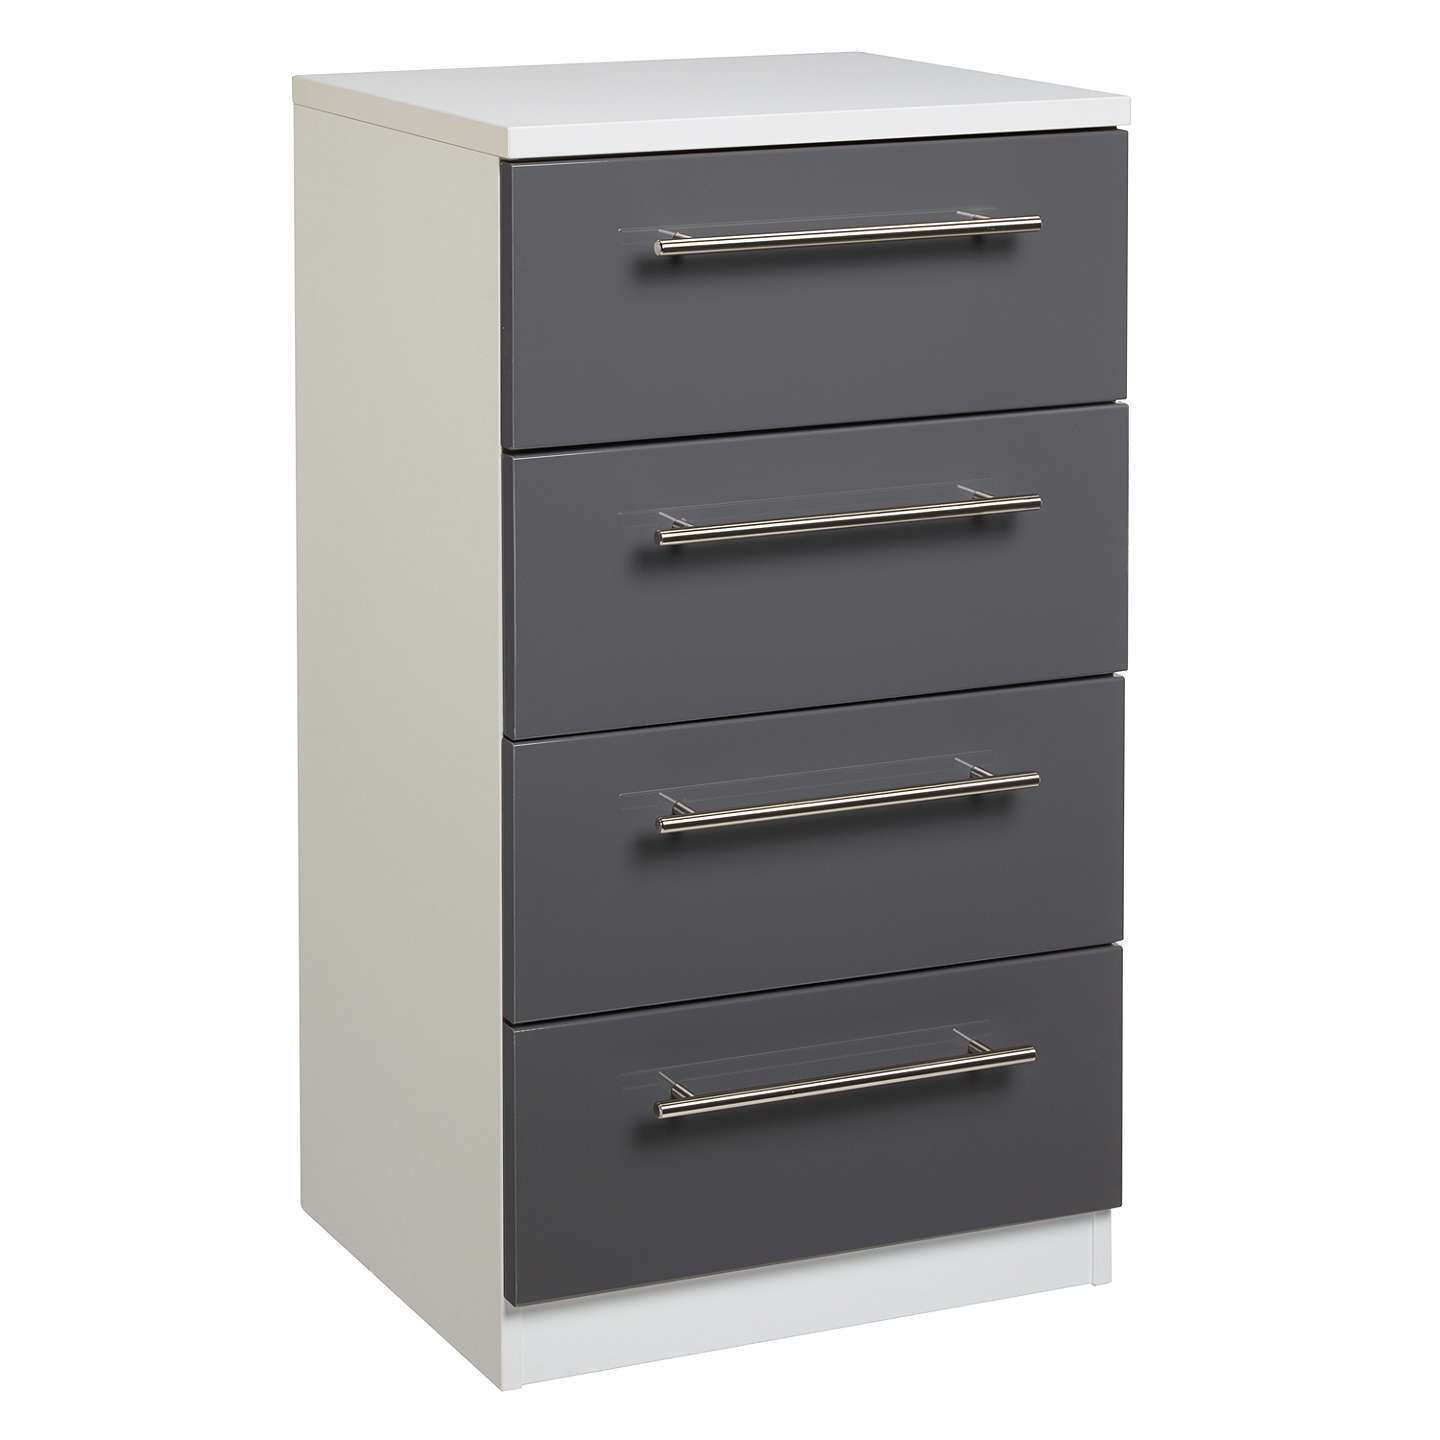 BuyHouse by John Lewis Mix it T-Bar Handle Narrow 4 Drawer Chest, Gloss House Steel/Matt White Online at johnlewis.com